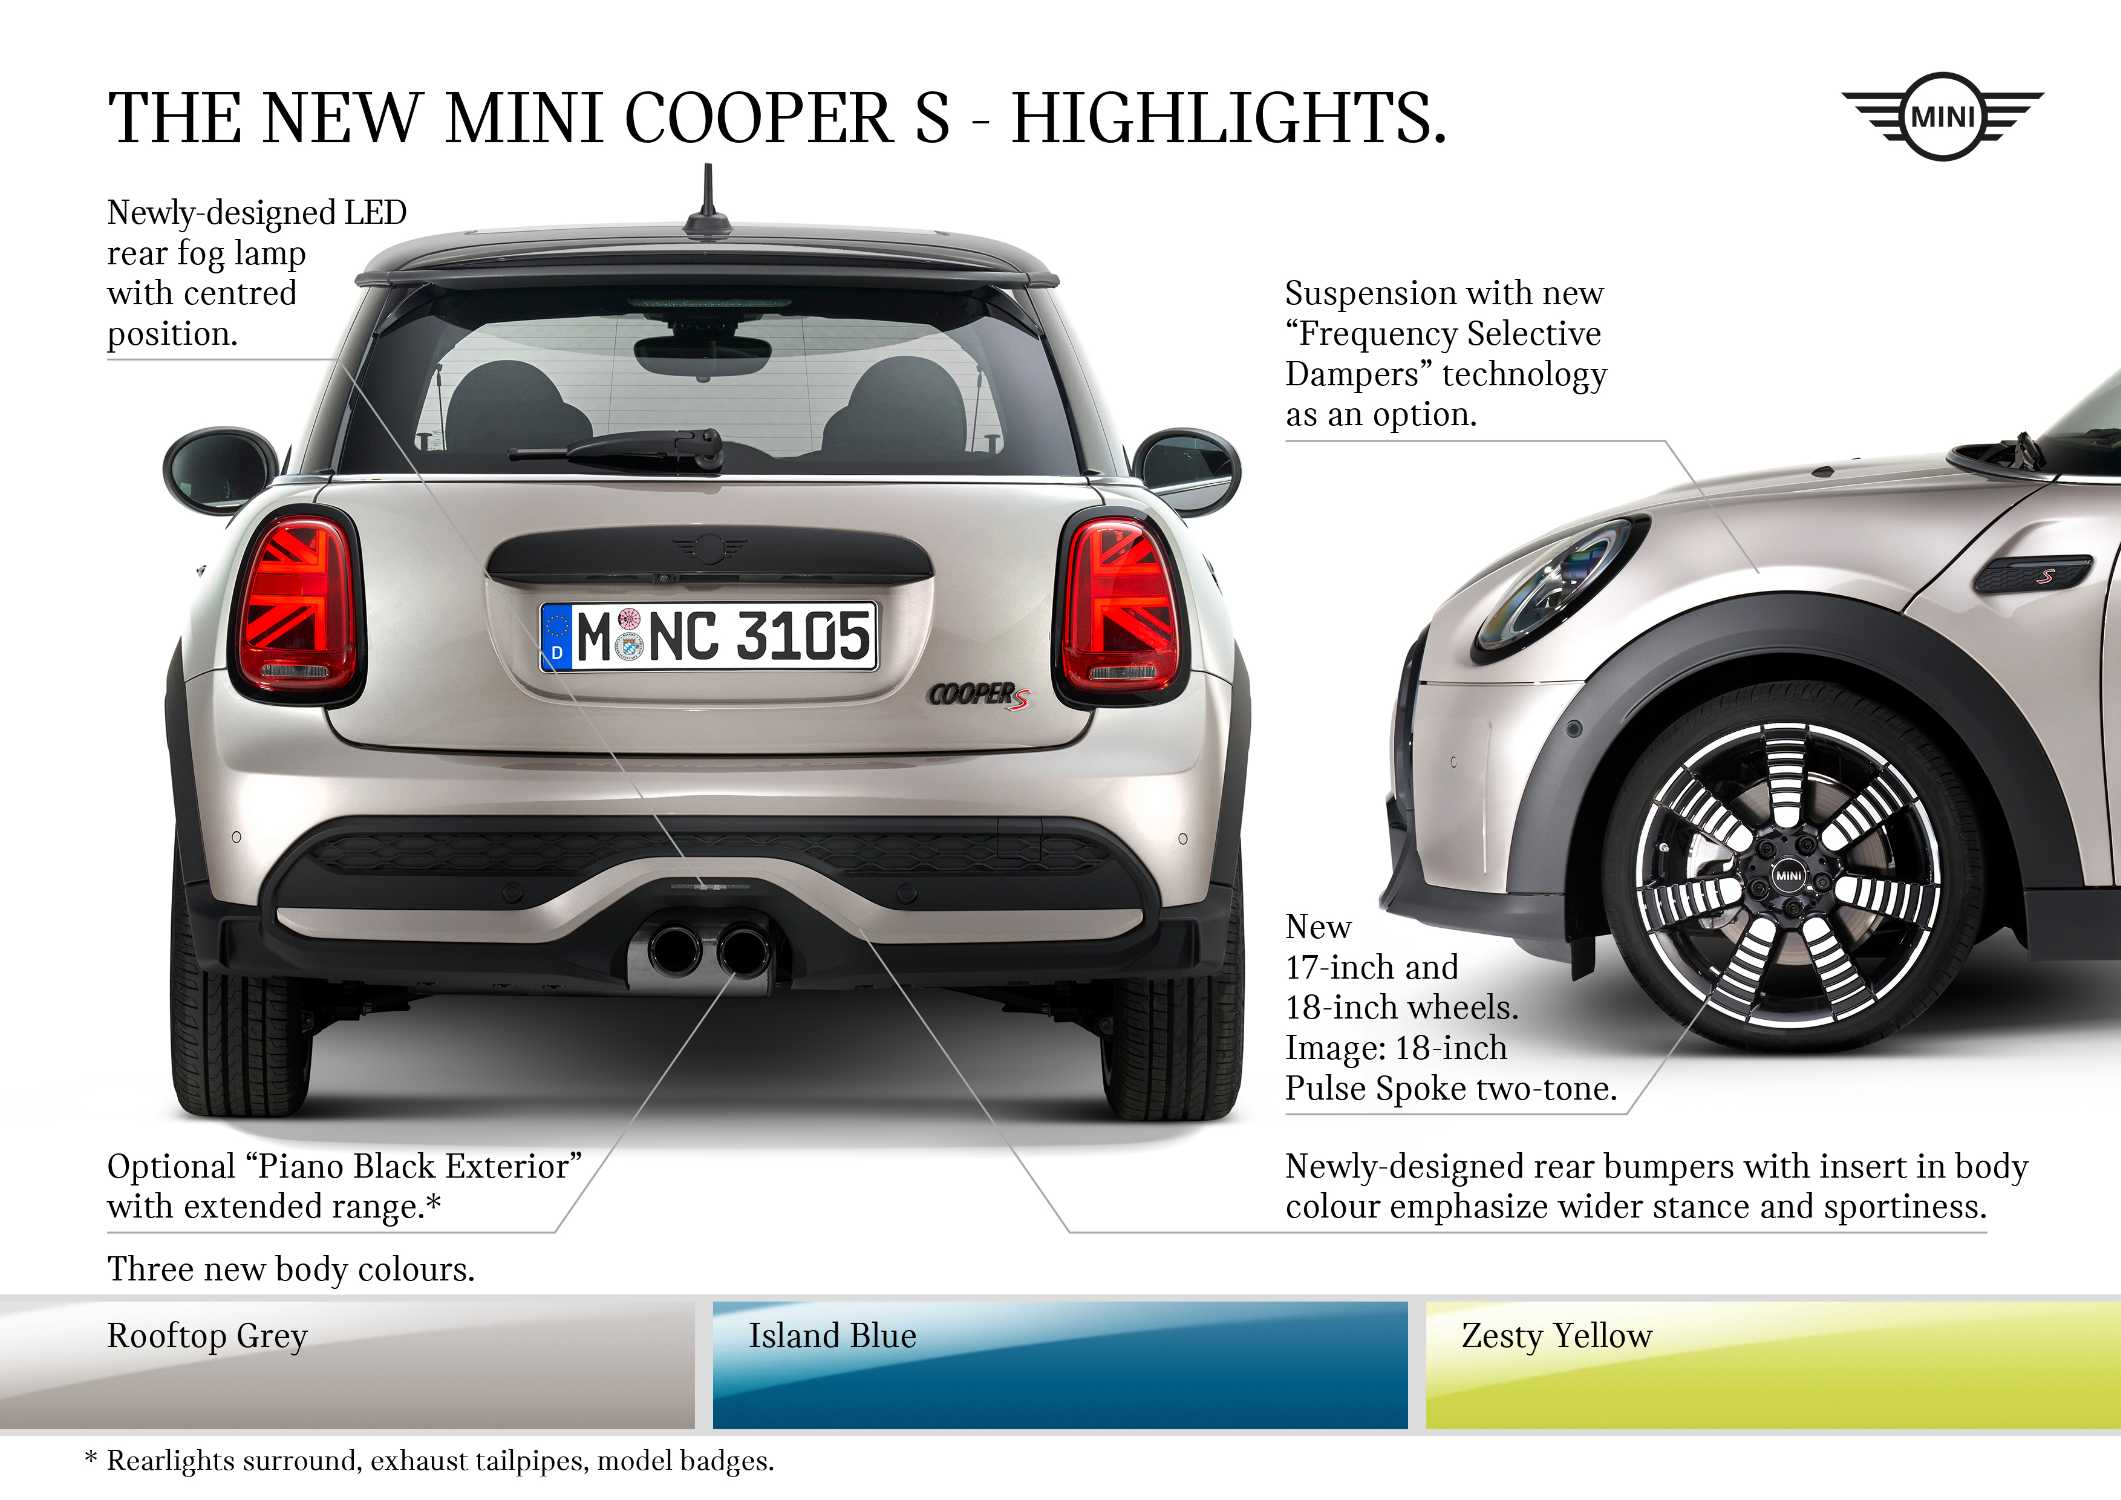 Highlights - MINI Cooper S 3-door (01/2021)